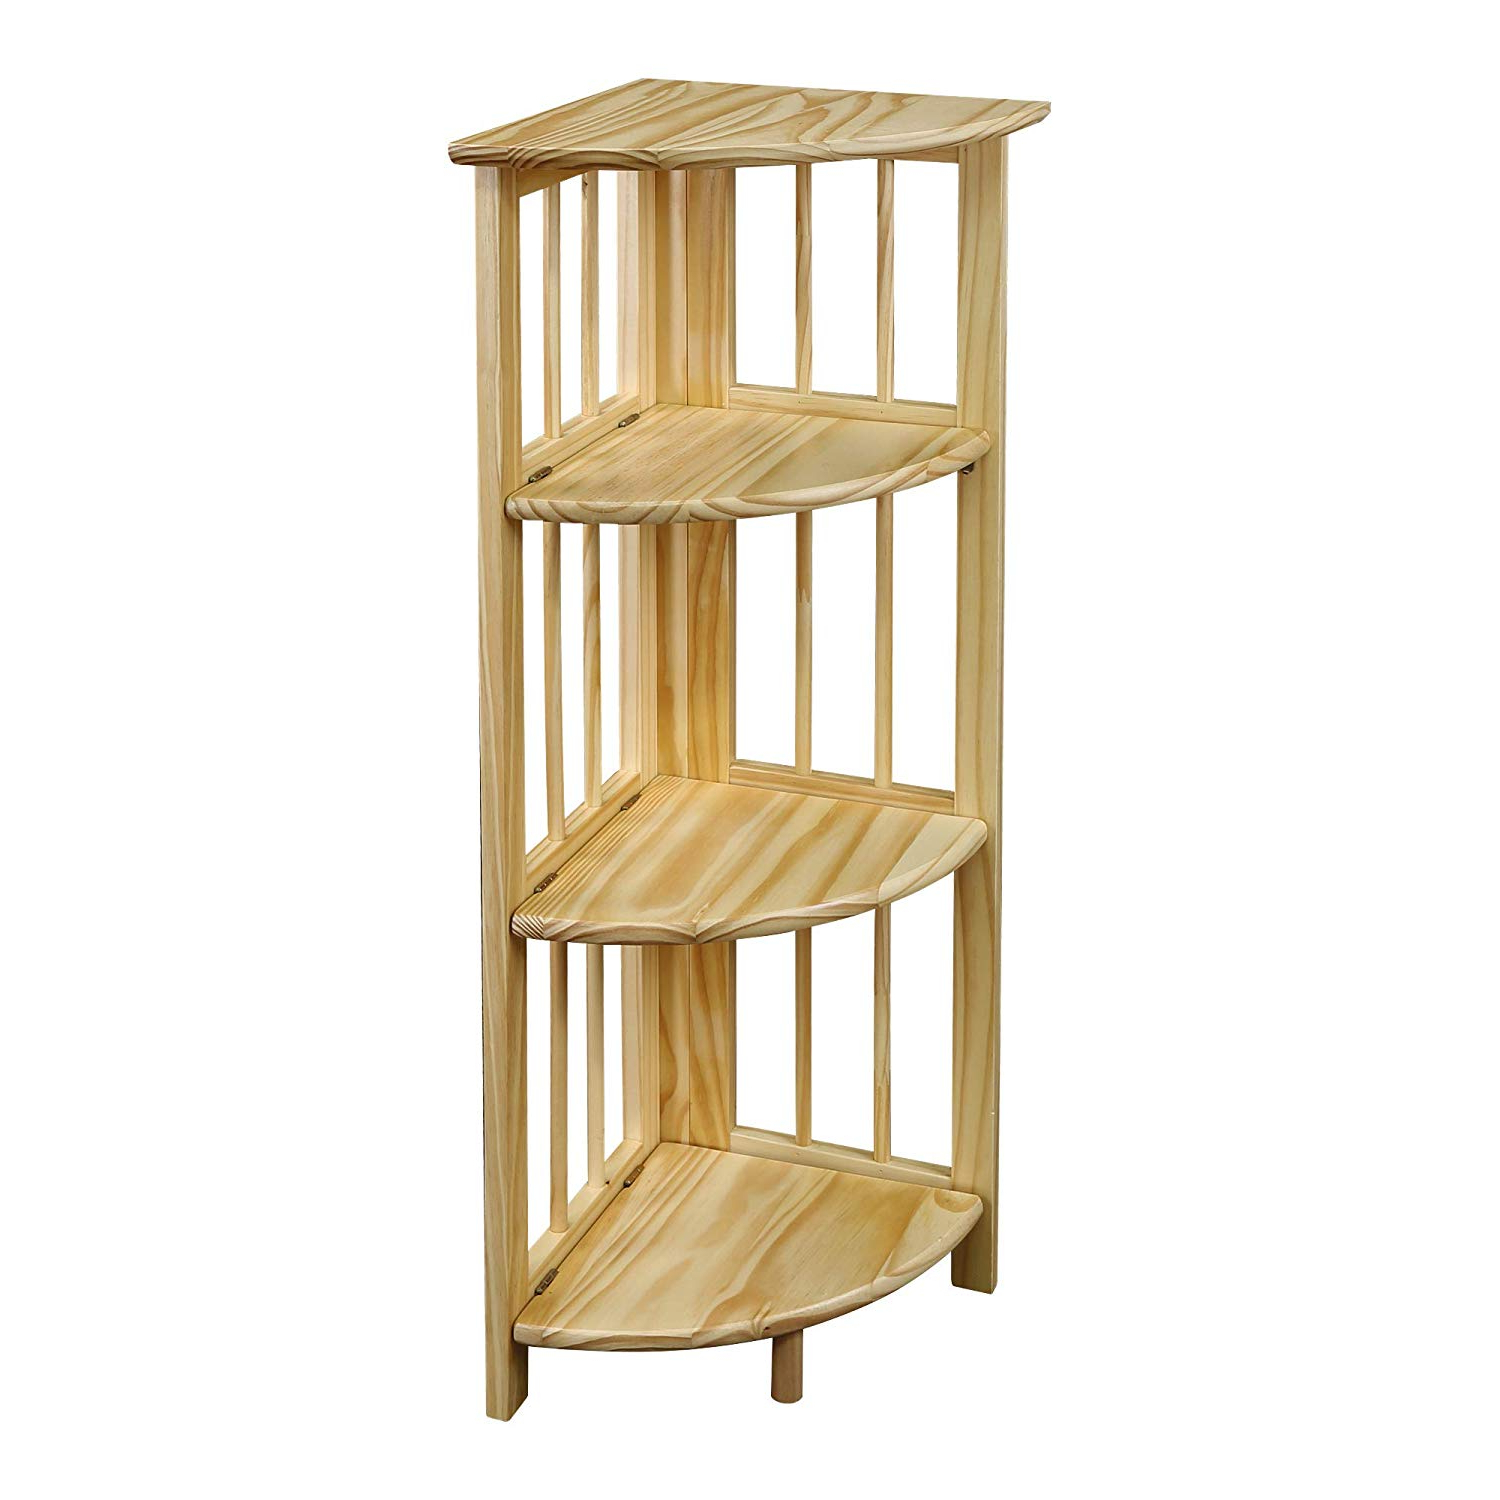 2020 Yu Shan 4 Shelf Corner Bookcase, Natural Regarding Corner Bookcases By Hokku Designs (View 2 of 20)